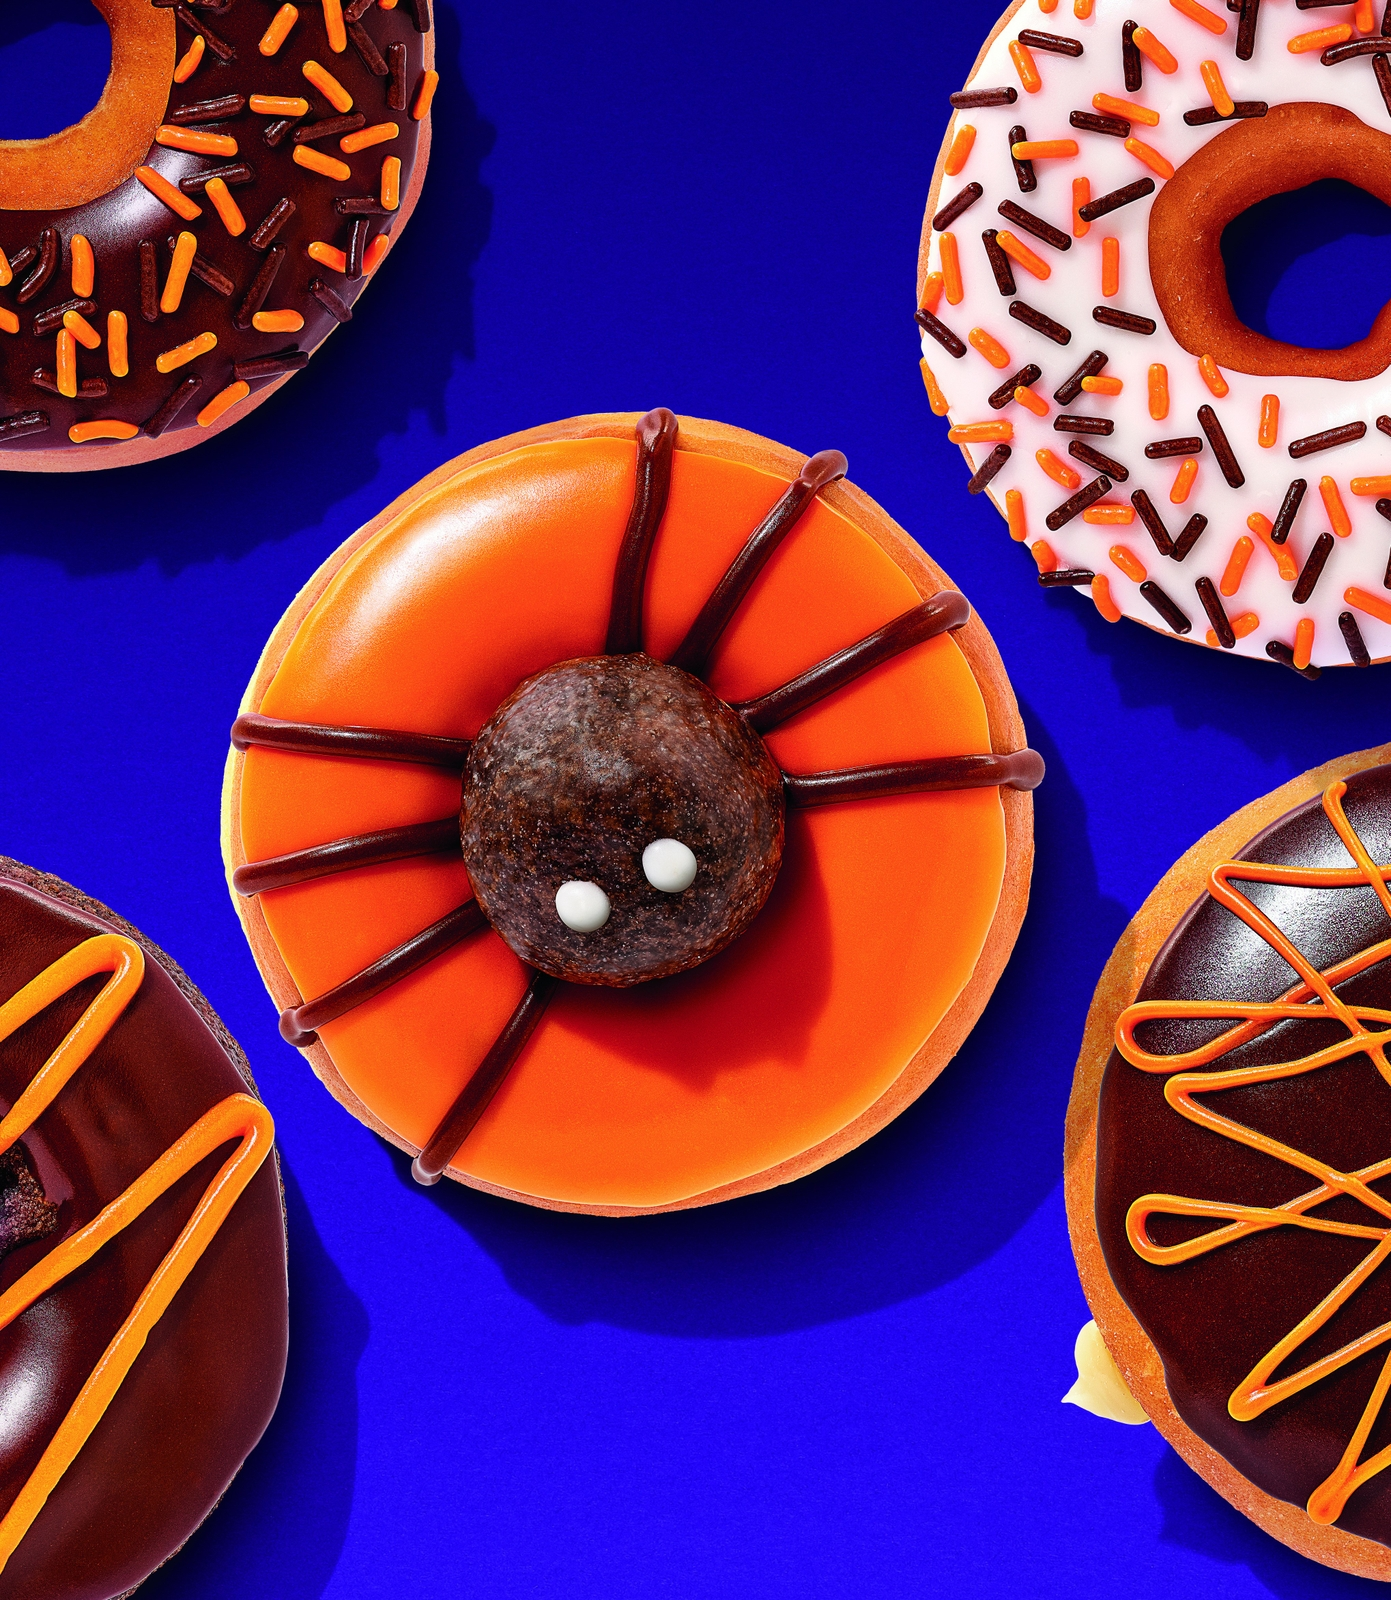 Dunkin Donuts Halloween Donuts 2020 How to Celebrate Halloween with Dunkin' | Dunkin'